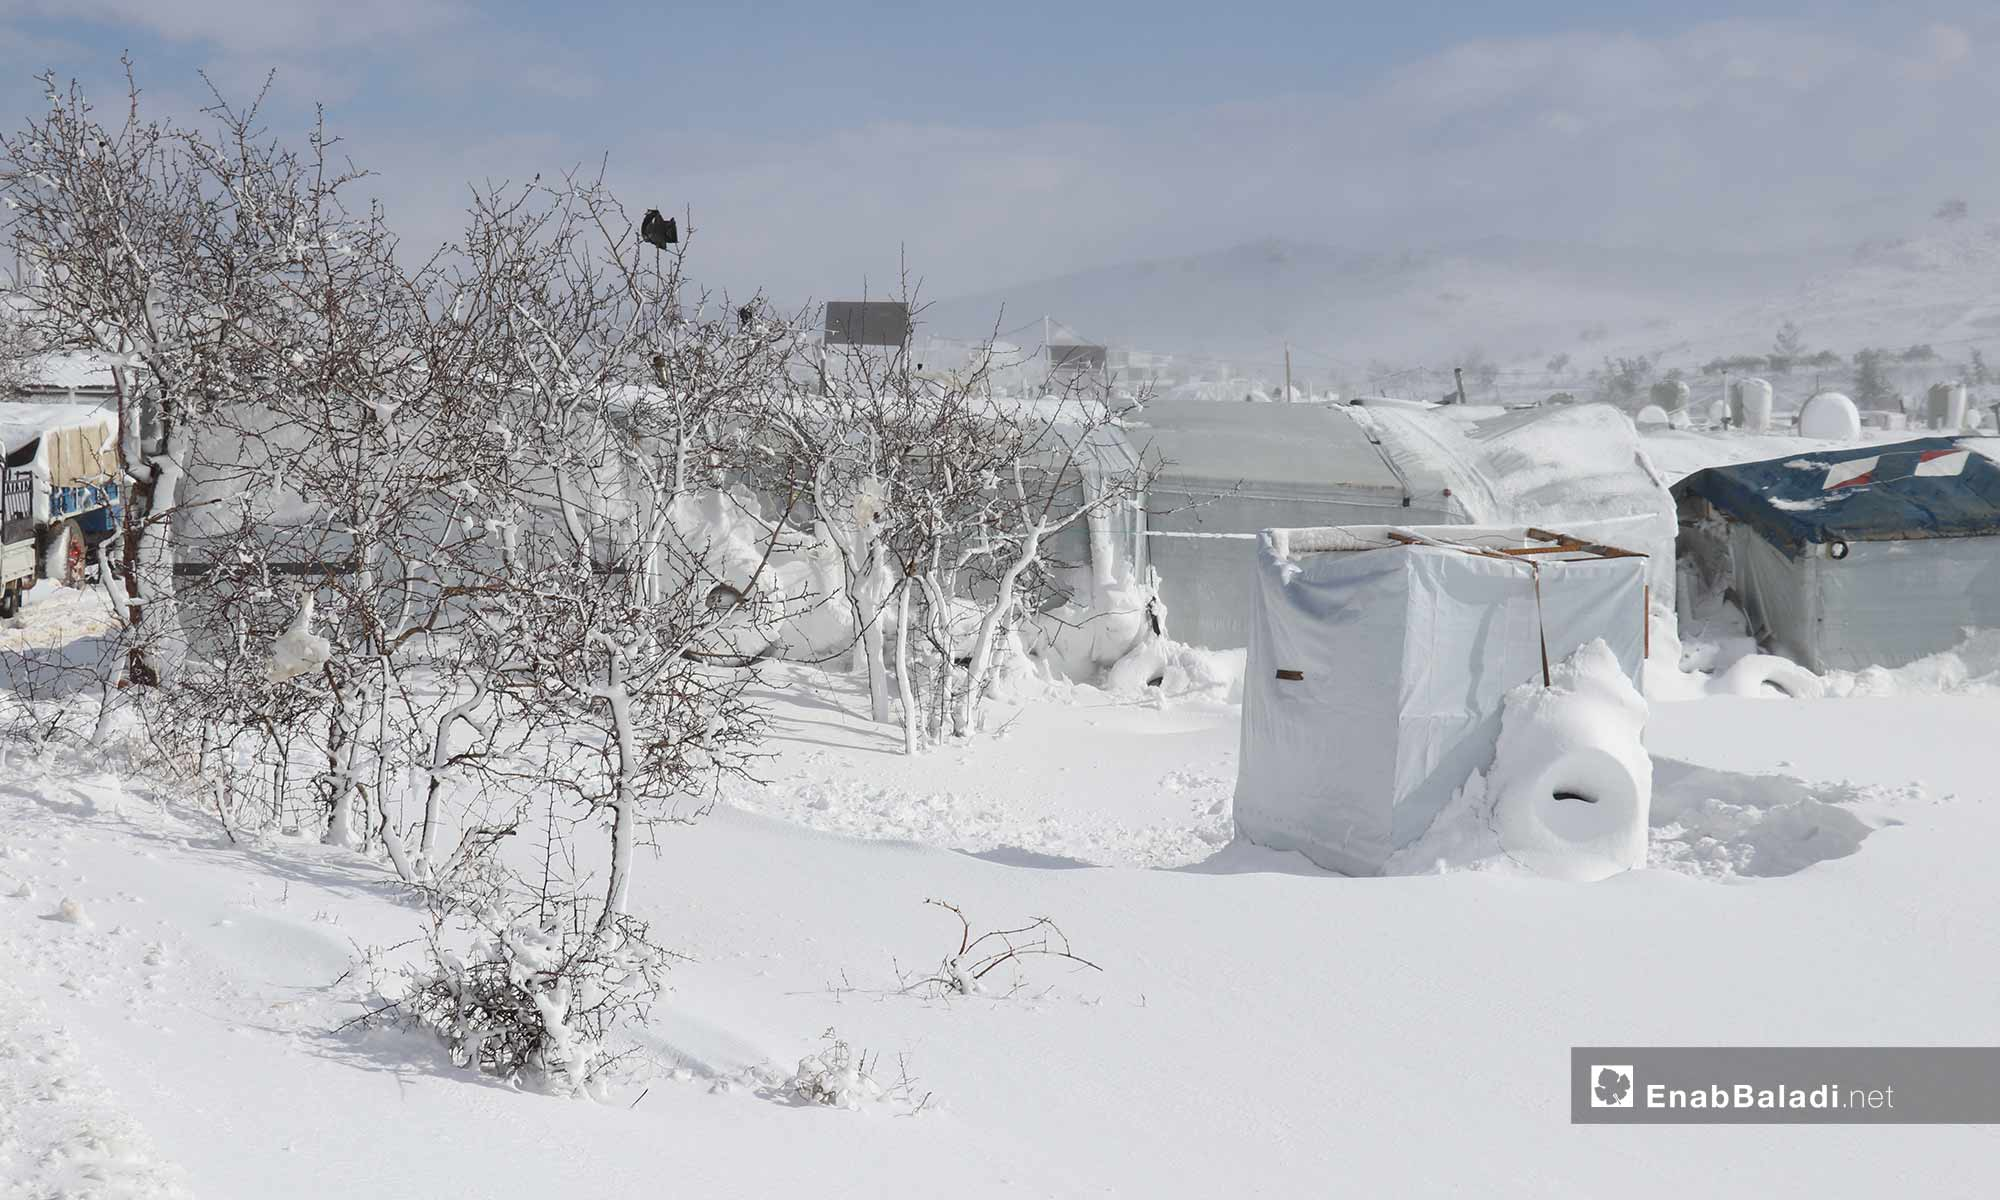 Tents covered with snow in Arsal camps in Lebanon, 9 January 2019 (Enab Baladi)